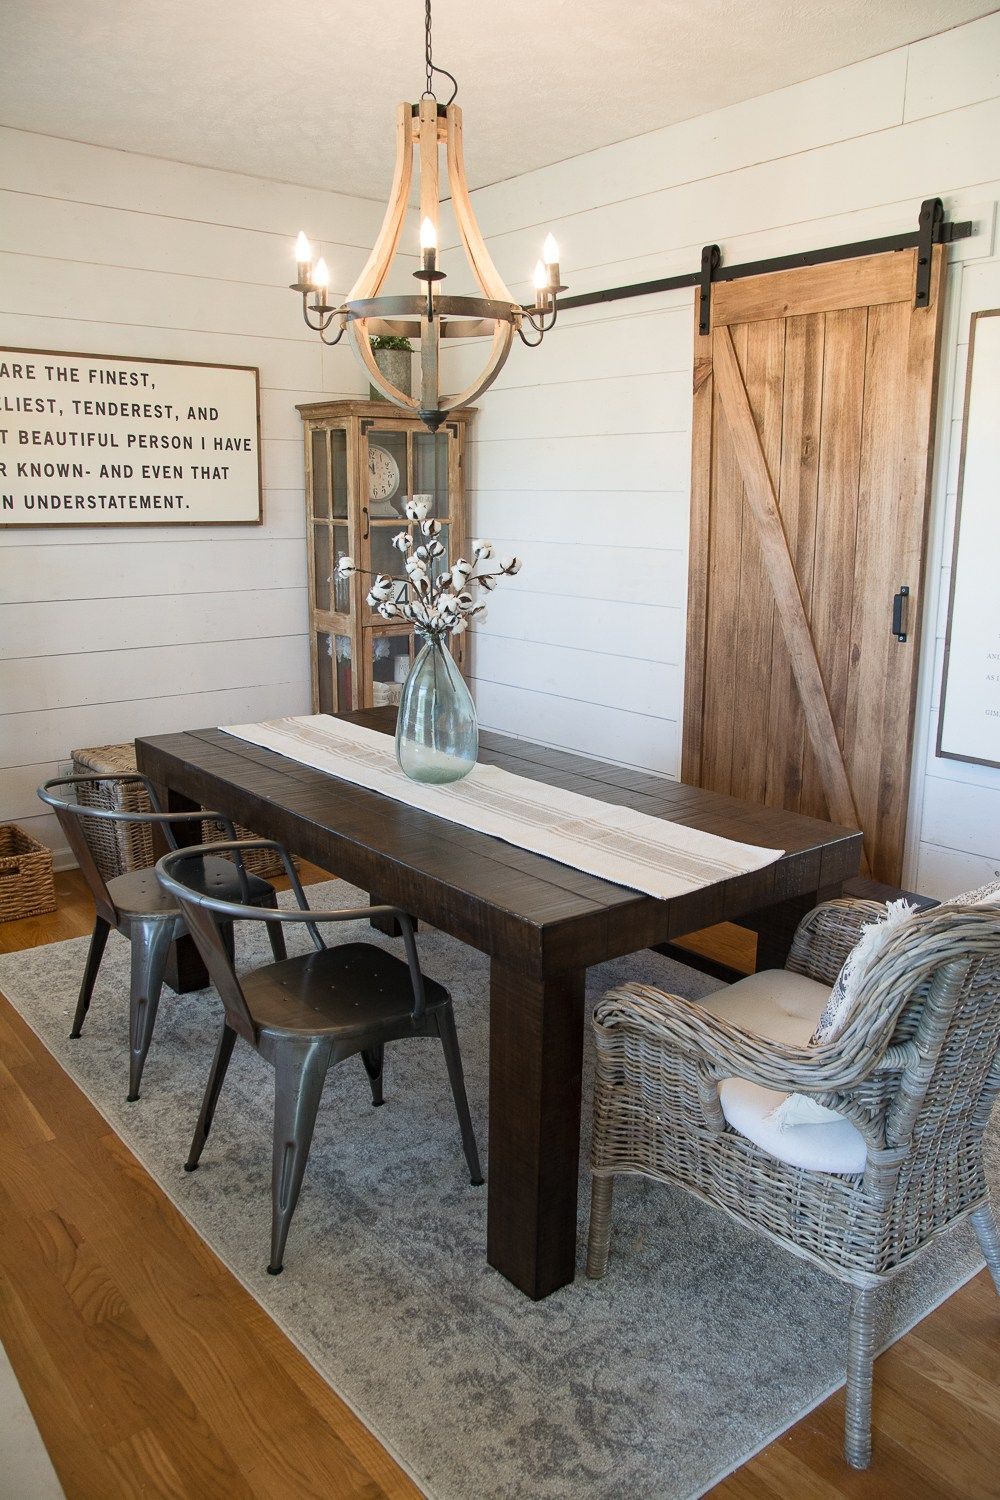 An Affordable Diy Farmhouse Dinning Room How We Turned An Ordinary House Into A Stylish Farmhouse Style Dining Room Dining Room Remodel Farmhouse Dining Room